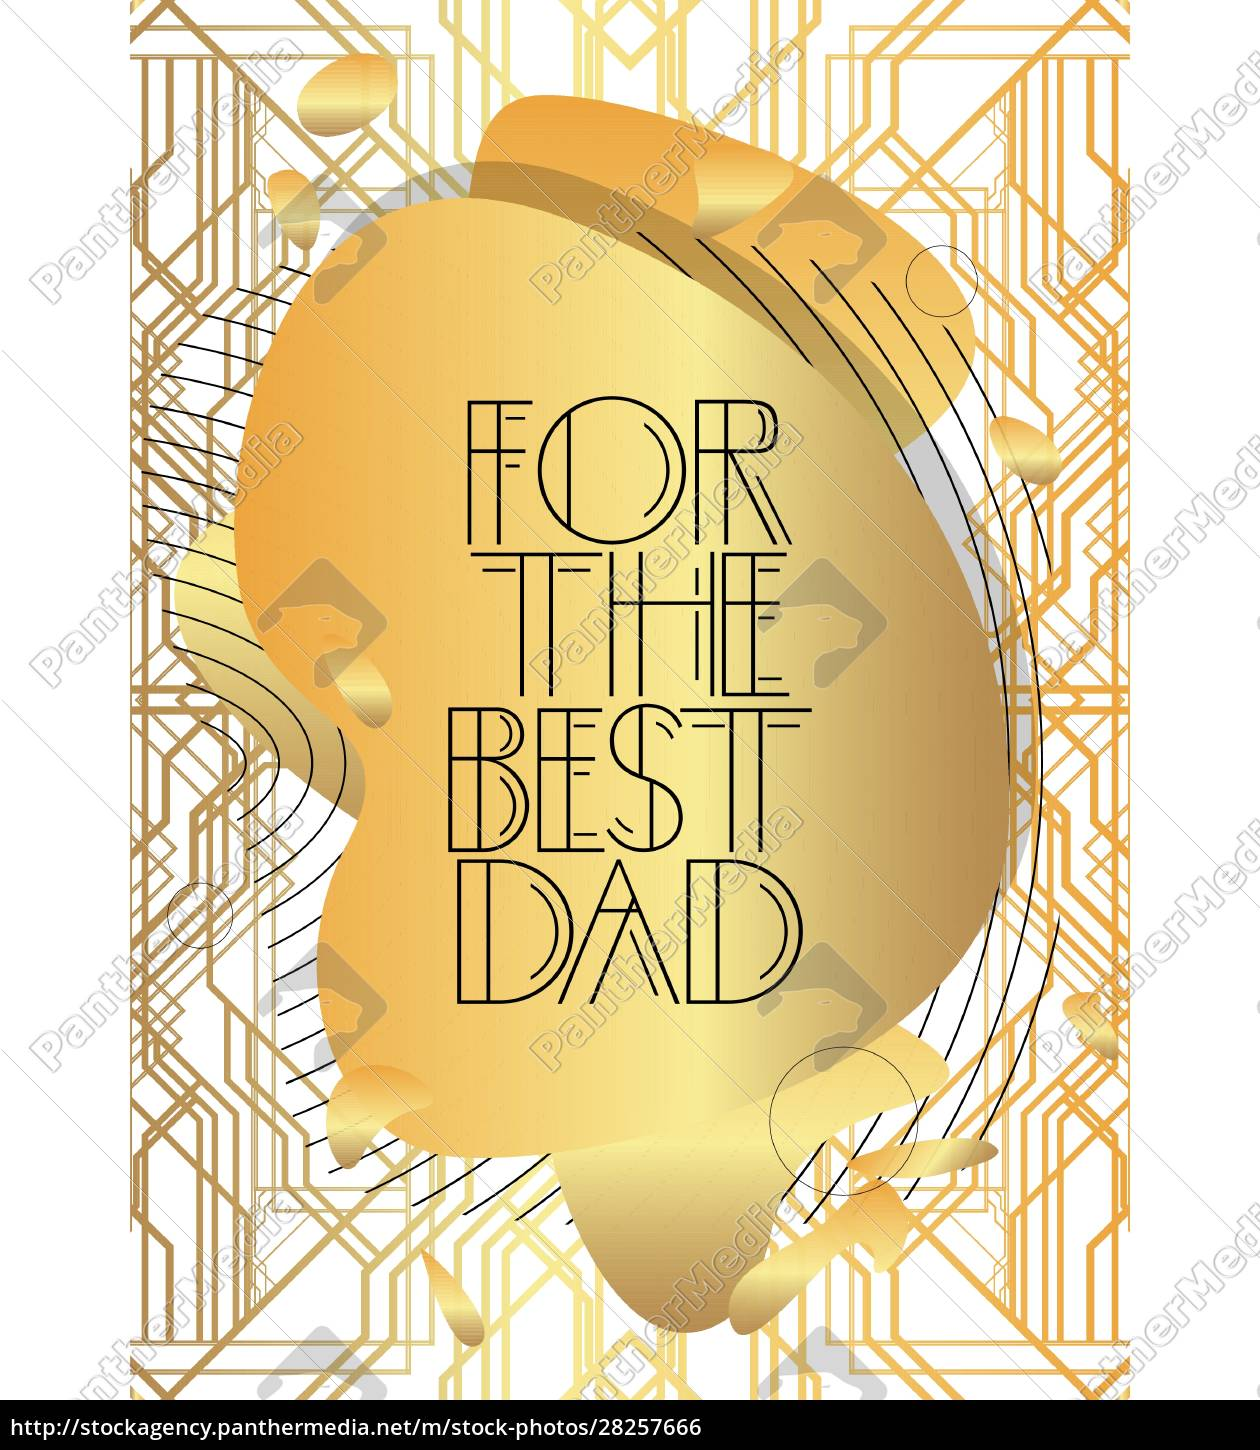 art, deco, for, the, best, dad - 28257666